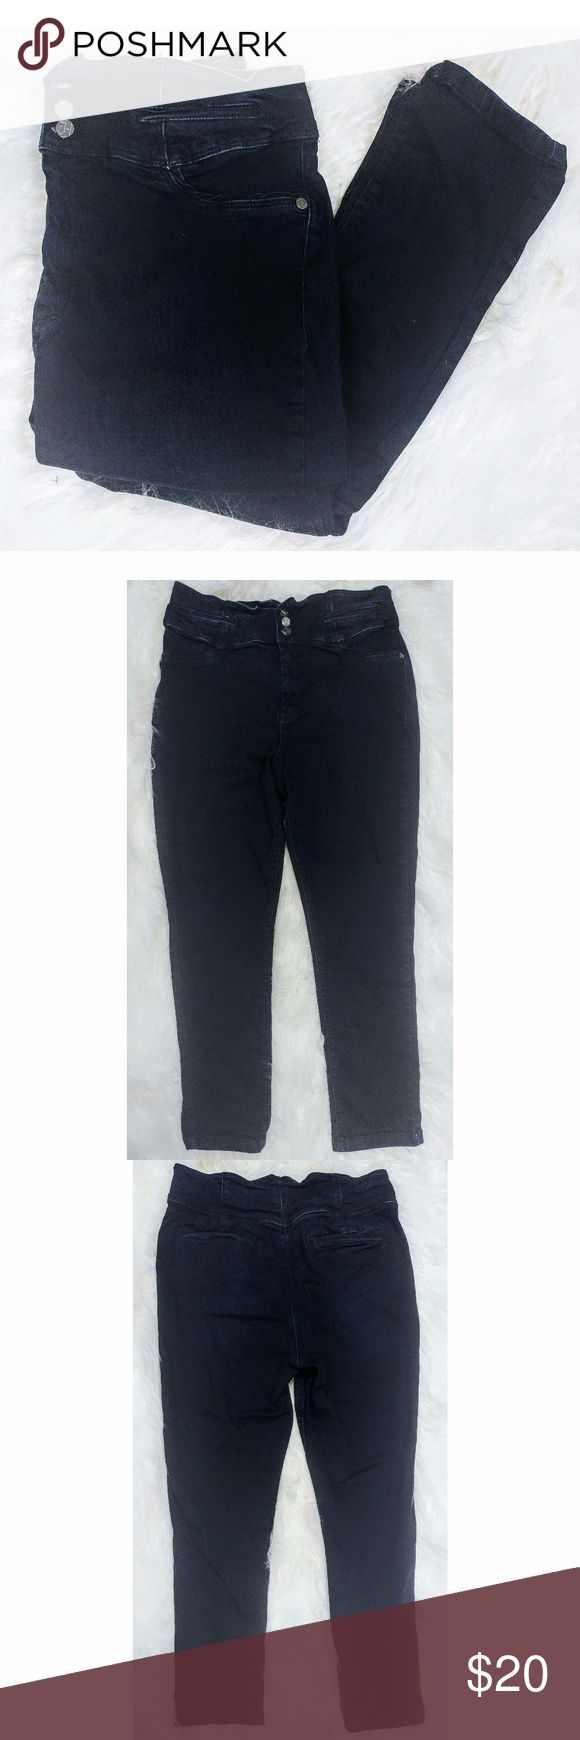 """NY & Co High Waisted Jennifer Hudson Skinny Jeans Trendy and surprisingly comfy high waisted jeans (these are soft and have some stretch). Excellent used condition, worn a couple of times but they aren't my size anymore. Waist - 17"""", length - 38"""" New York & Company Jeans Skinny"""